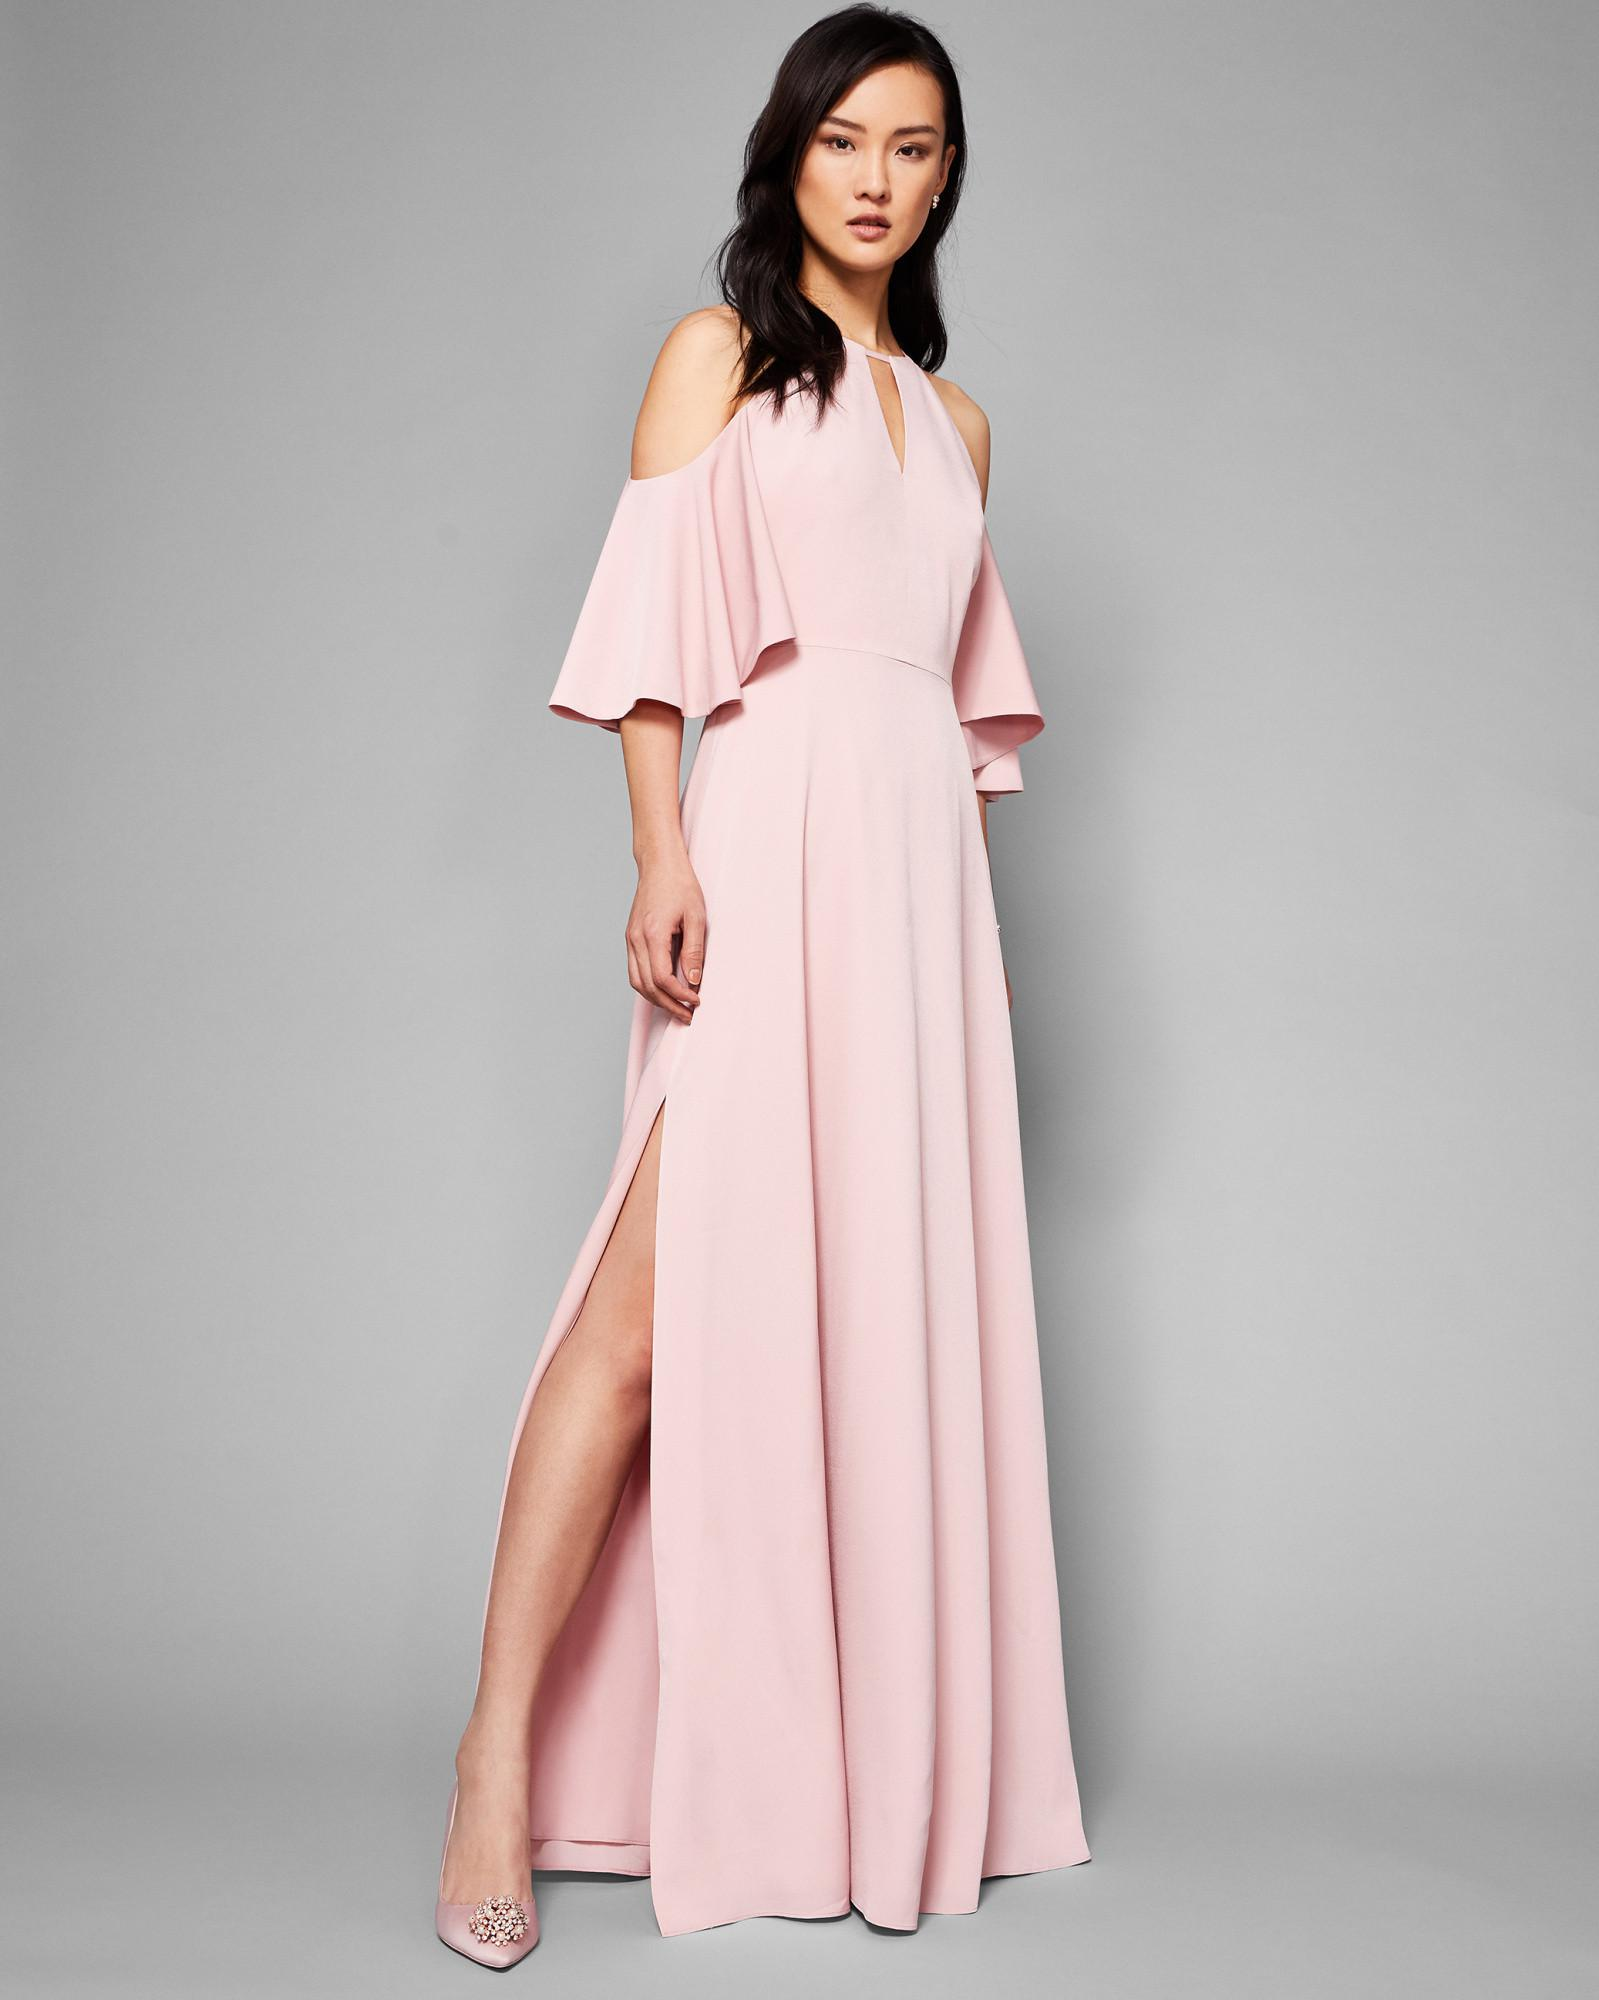 ad610a4f69f0a7 Lyst - Ted Baker Cut-out Shoulder Maxi Dress in Pink